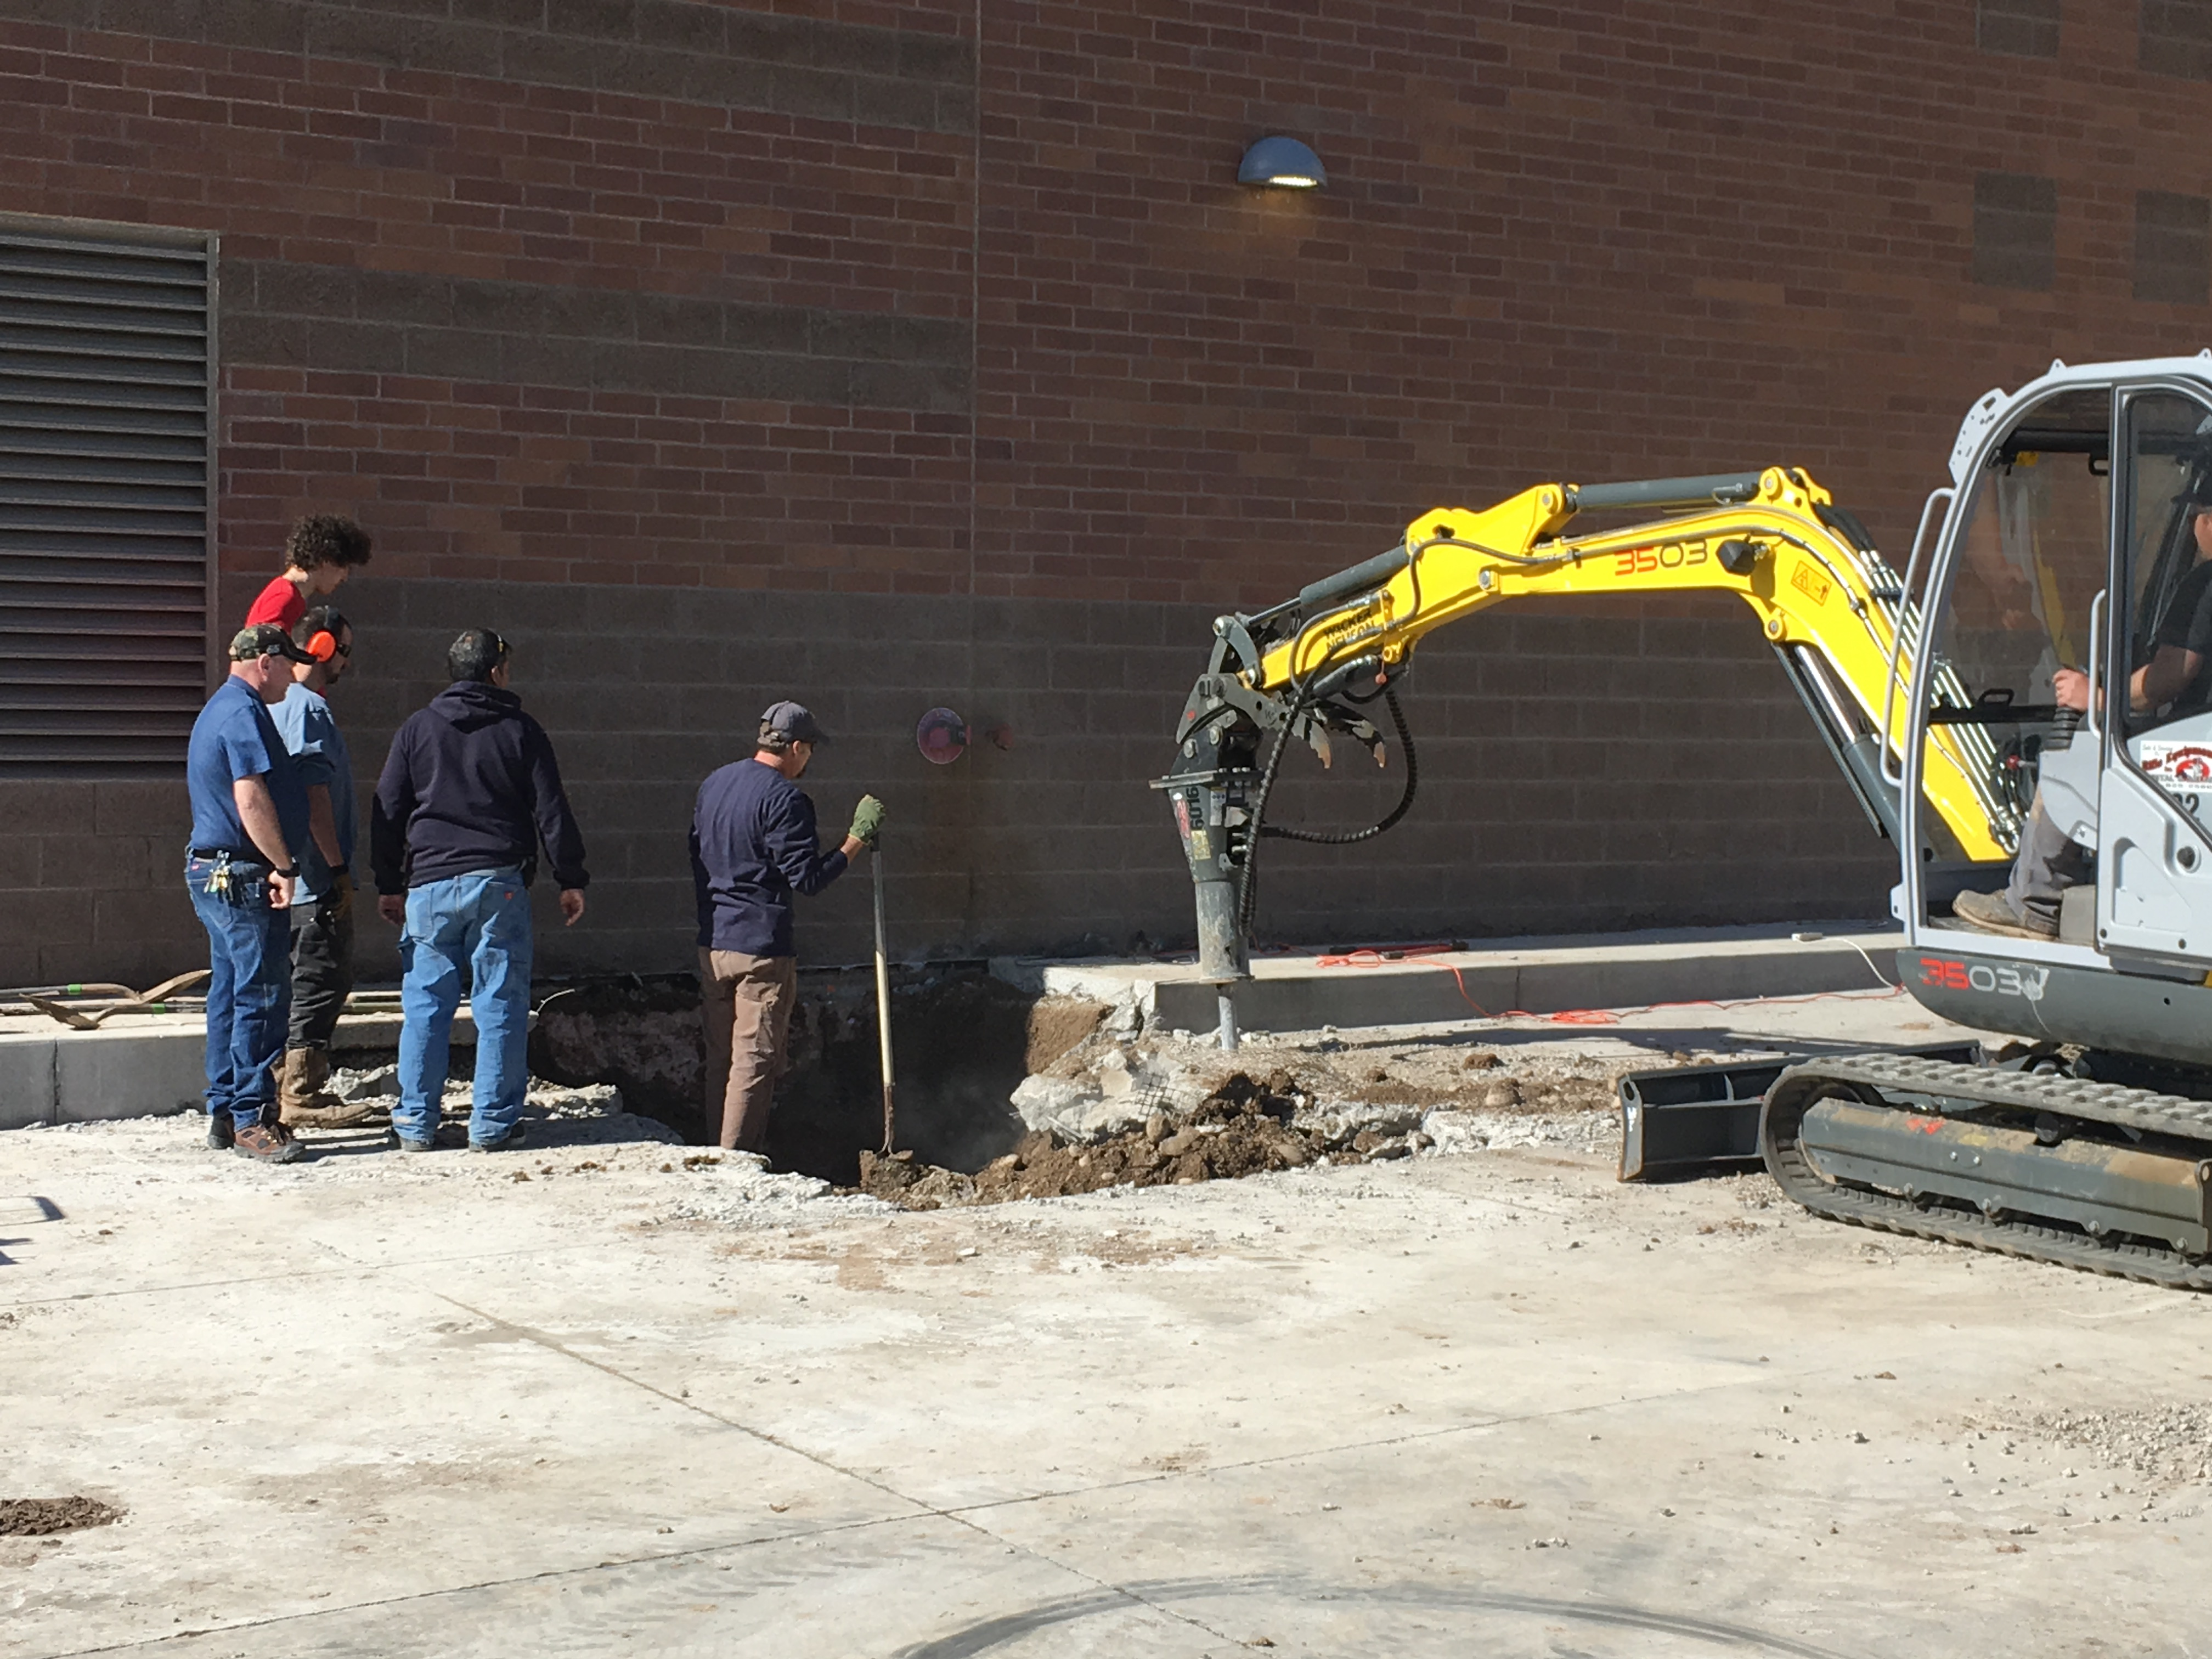 Grand Valley High School to reopen for Thursday classes